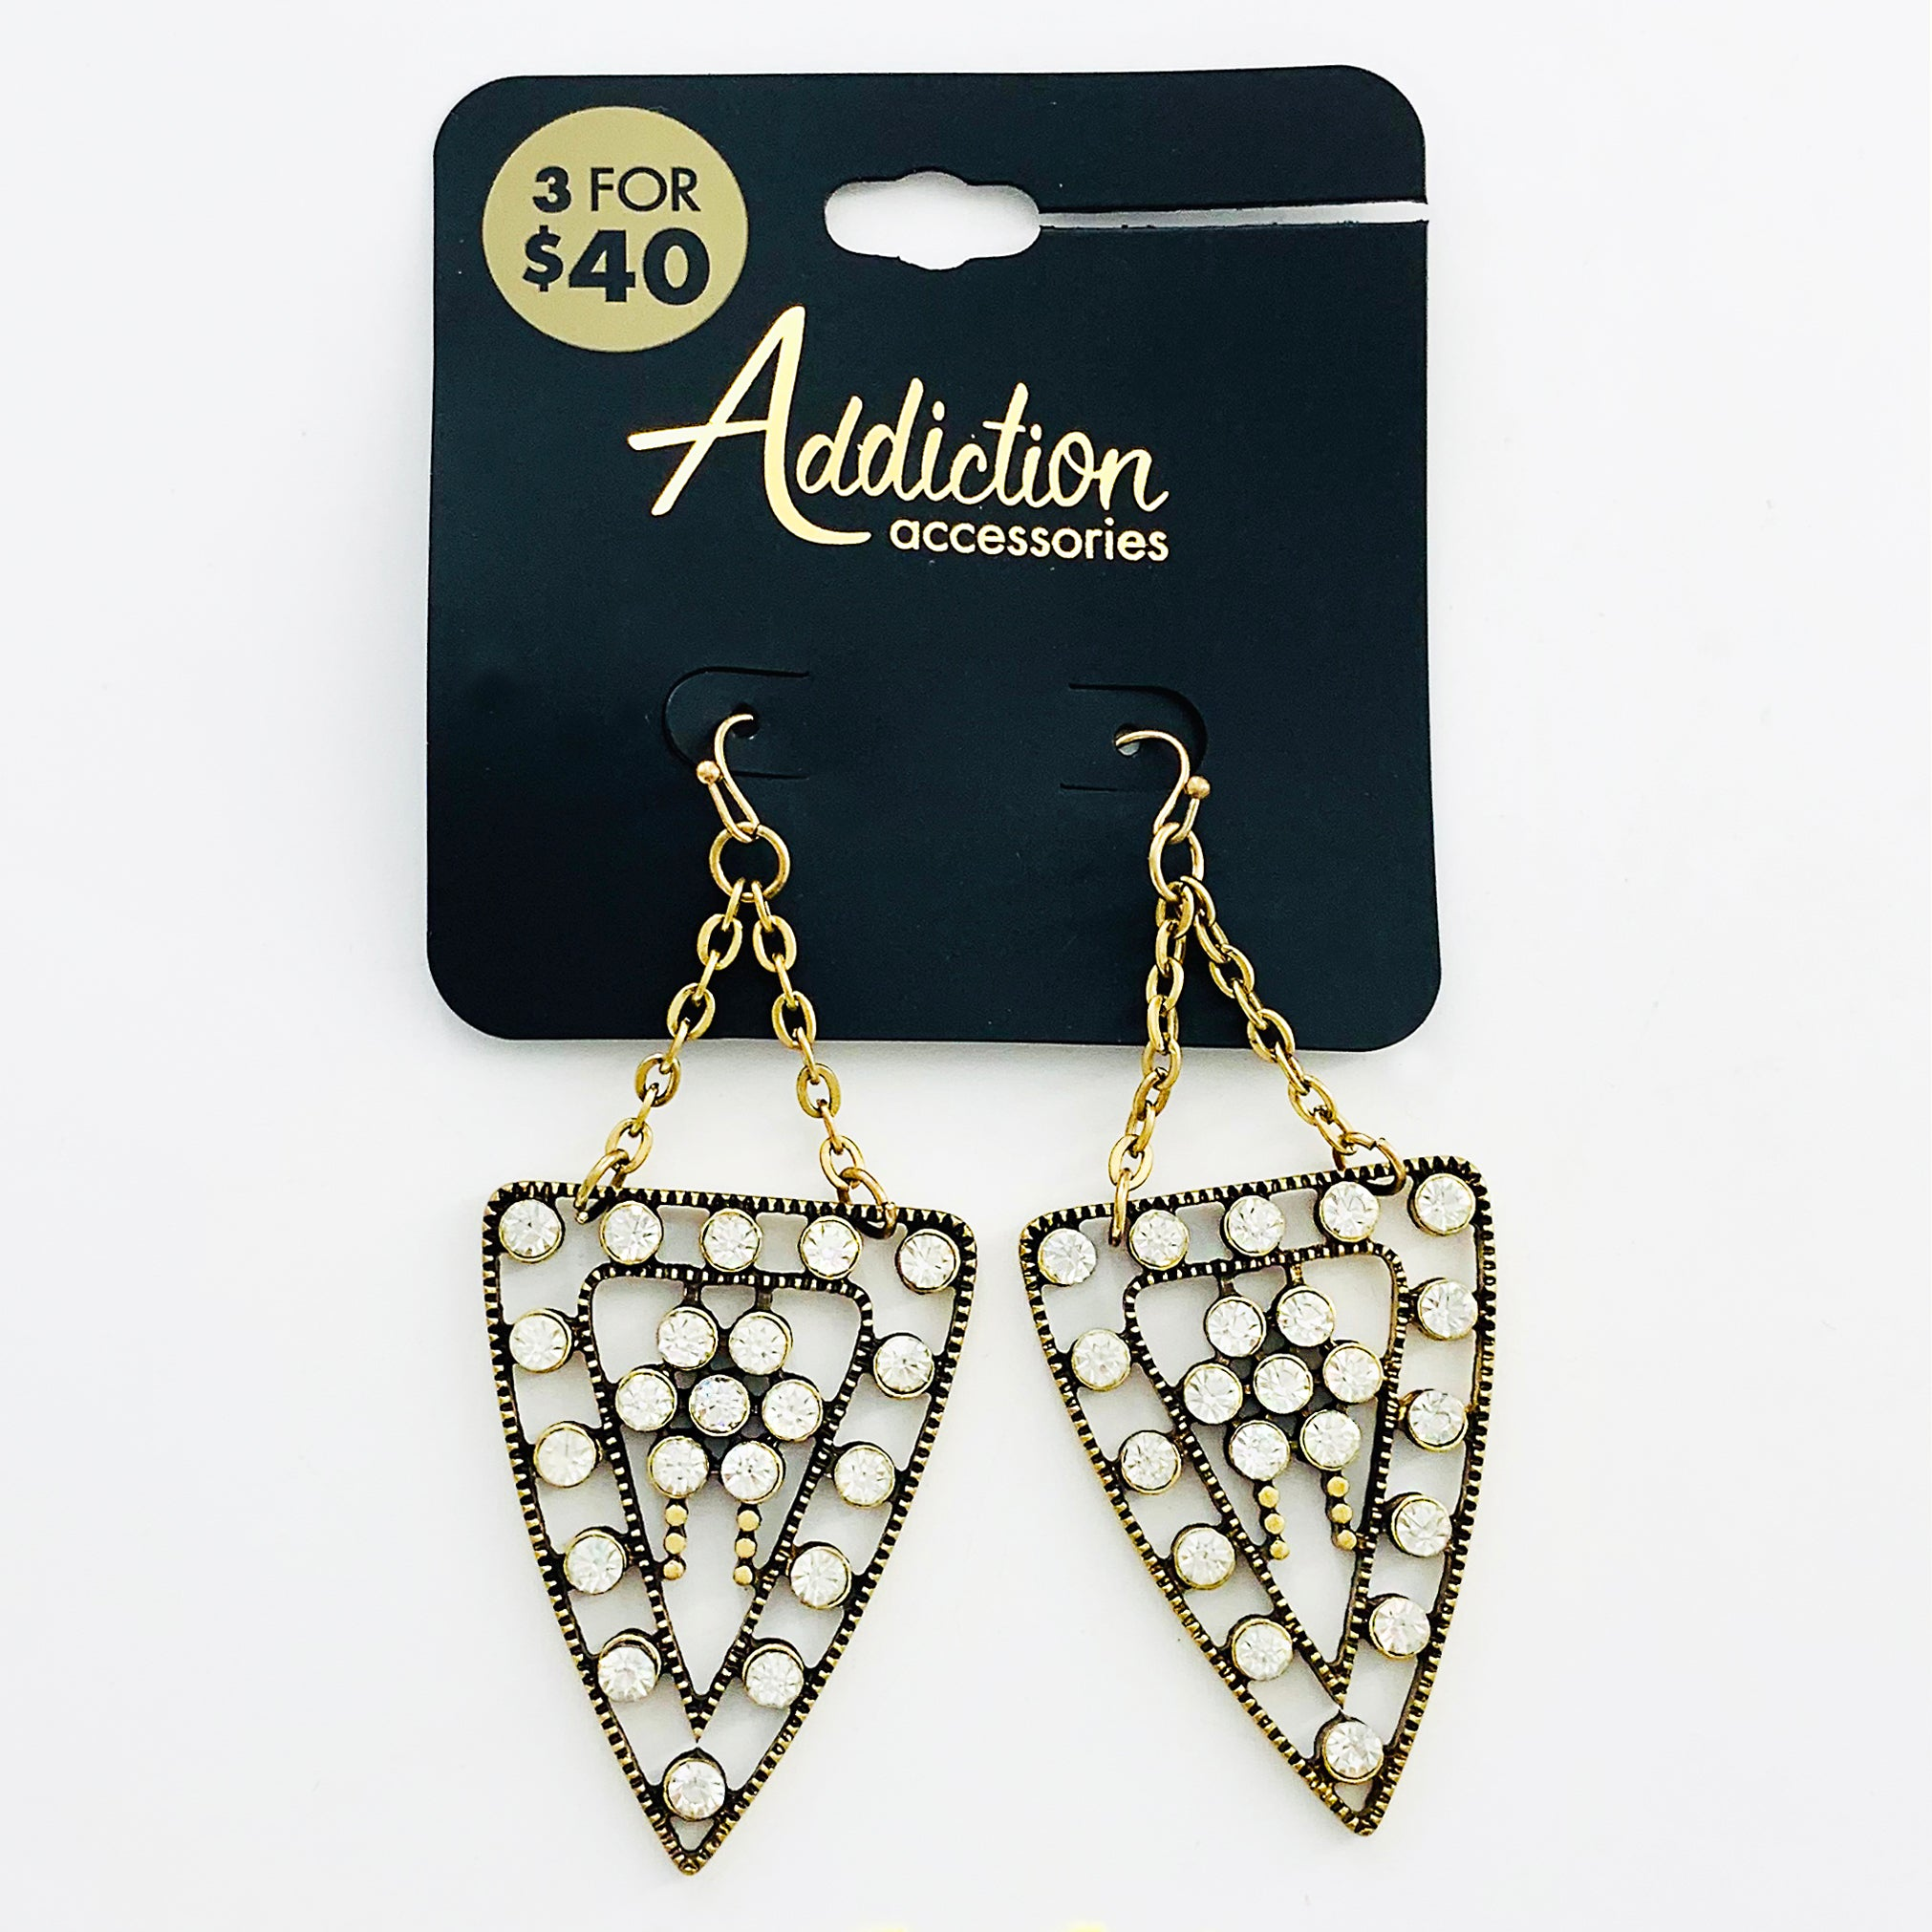 Triangle earrings with diamante stones